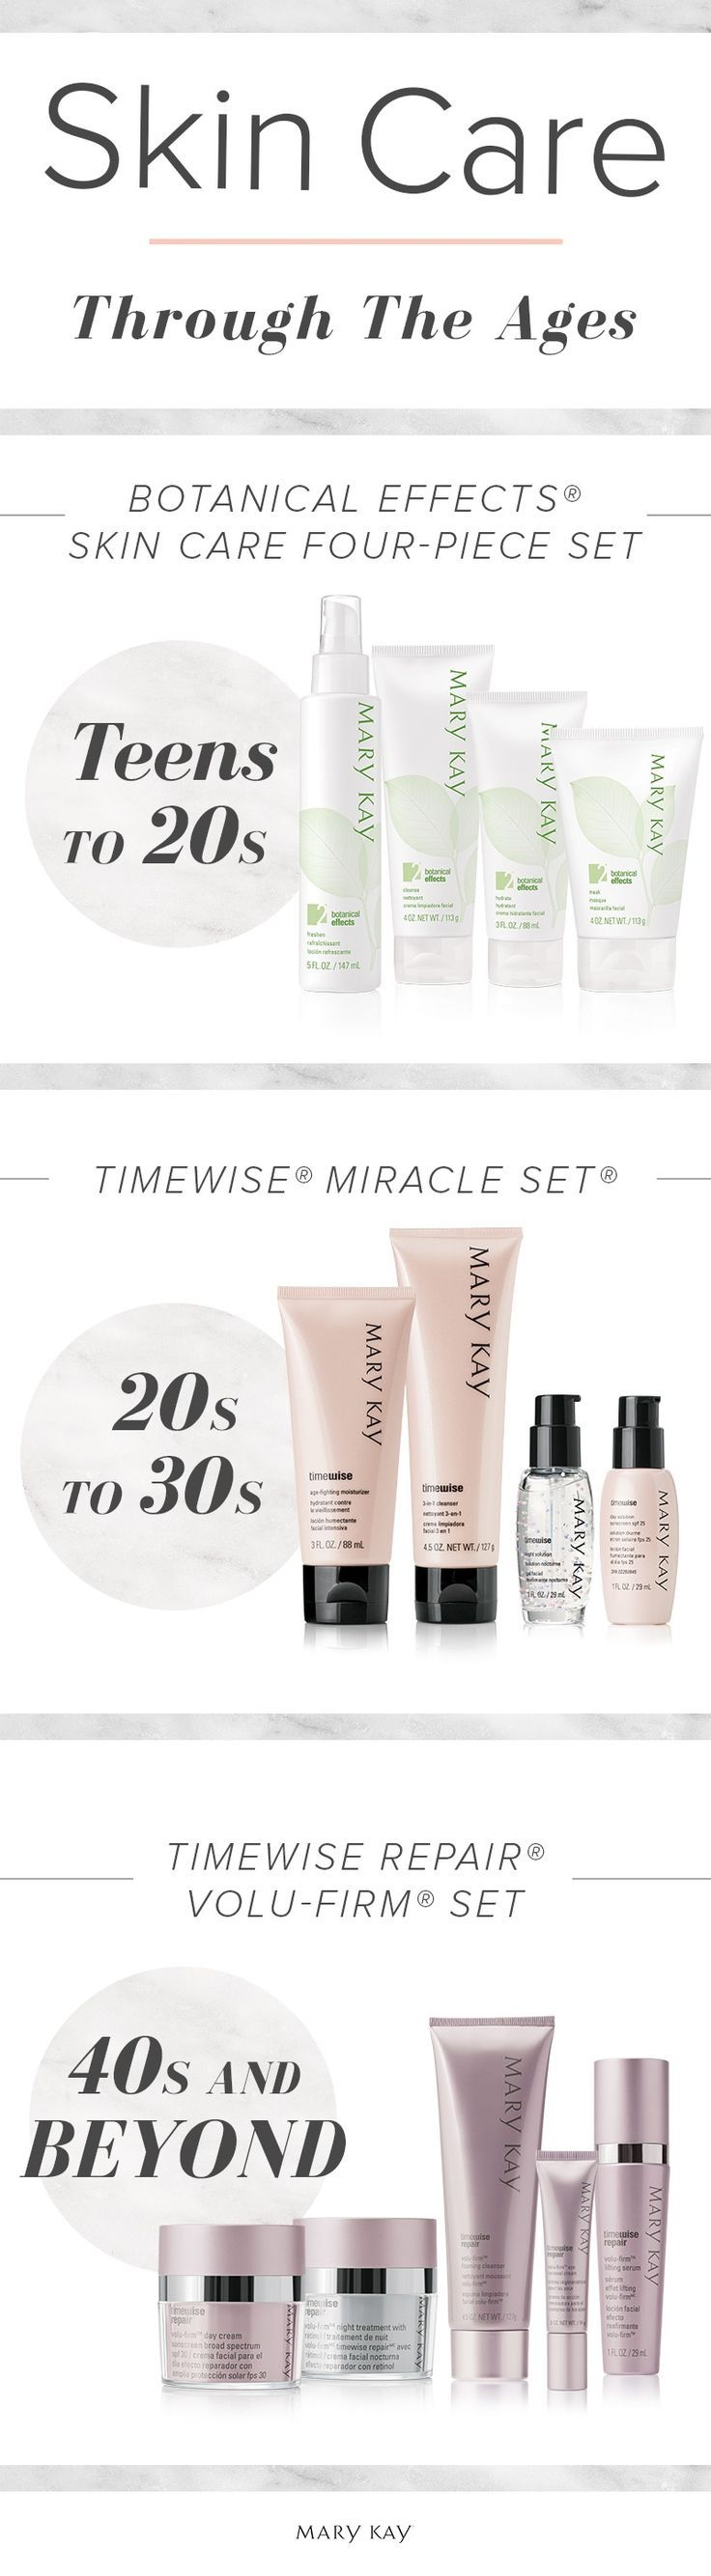 mary kay cosmetics product life cycle More than 25 million independent sales force members sell mary kay® products in over 35 product video: mary kay® cc cream real-life beauty advice from.